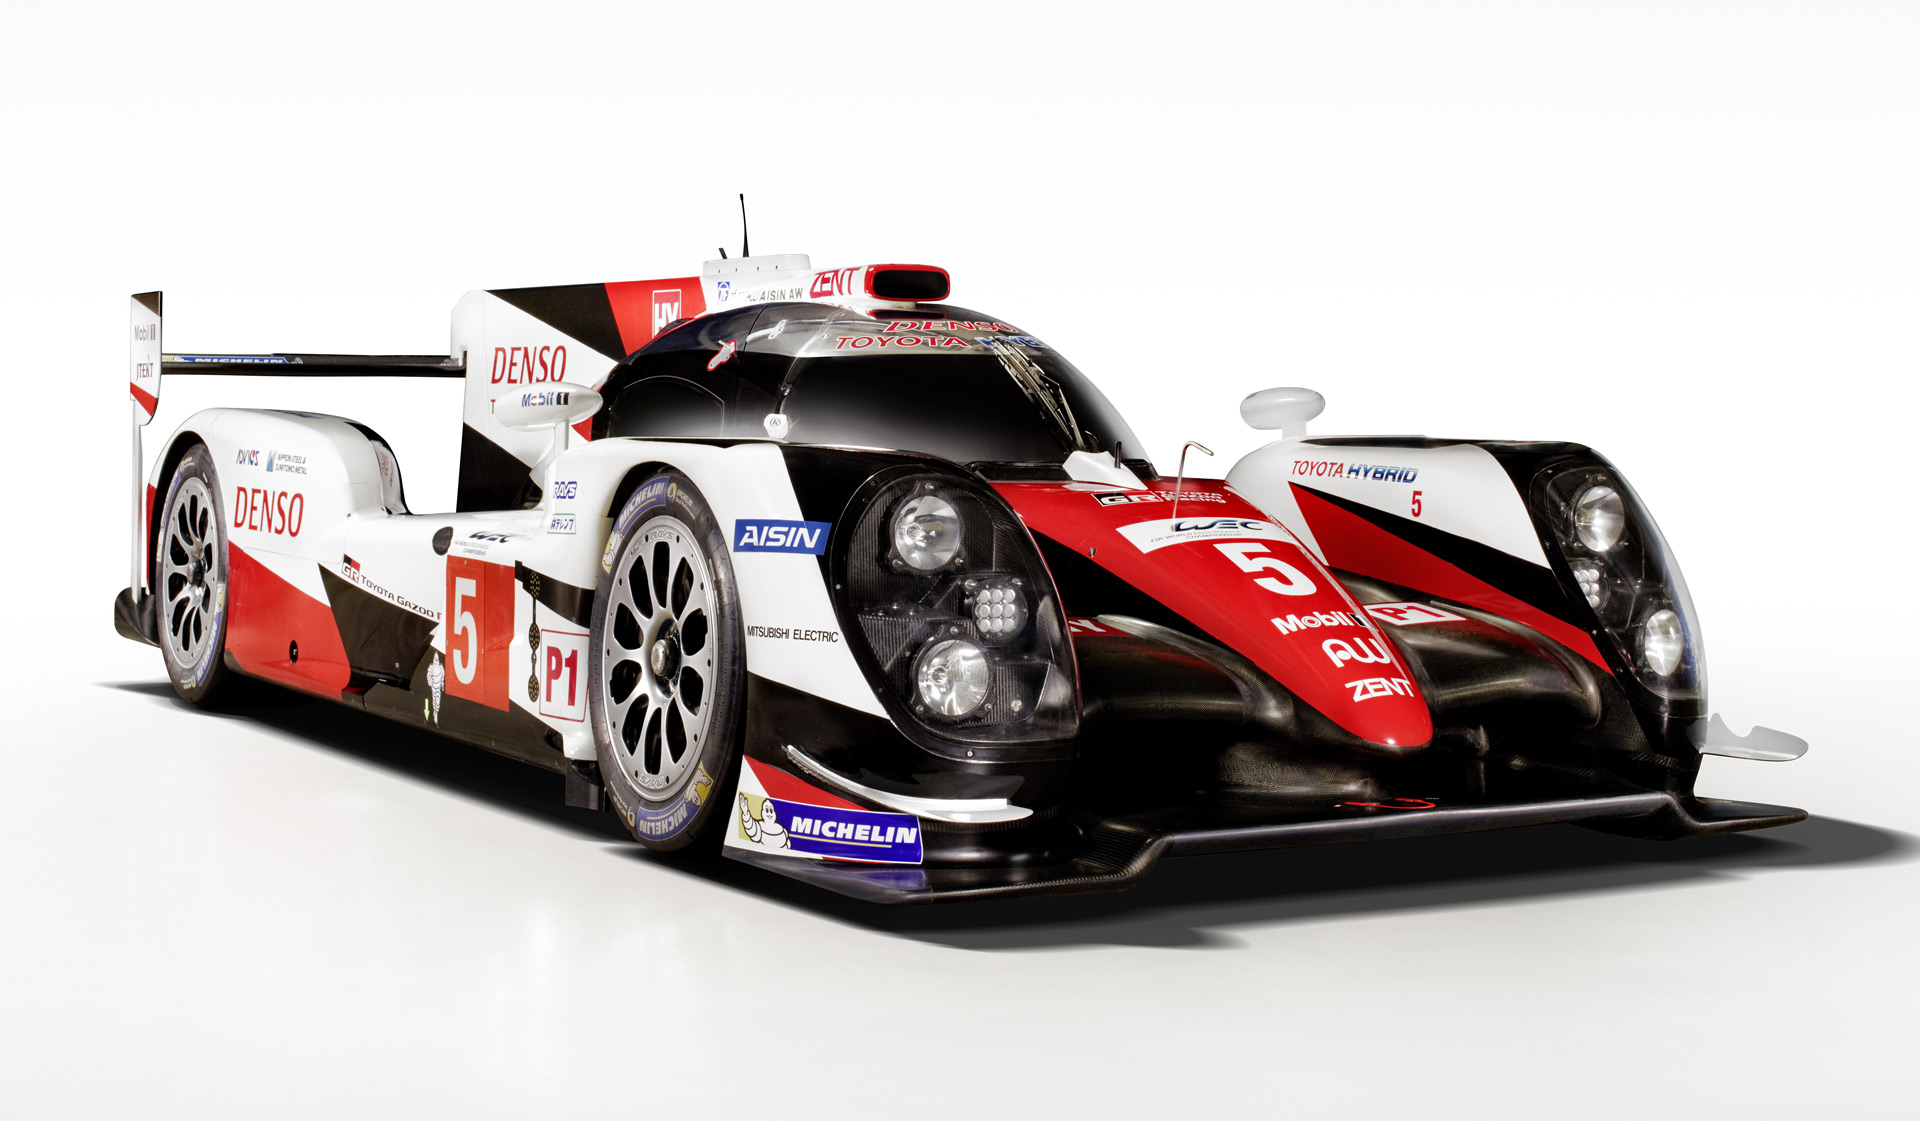 Toyota Ts050 Hybrid For 2016 Wec Revealed With Twin Turbo